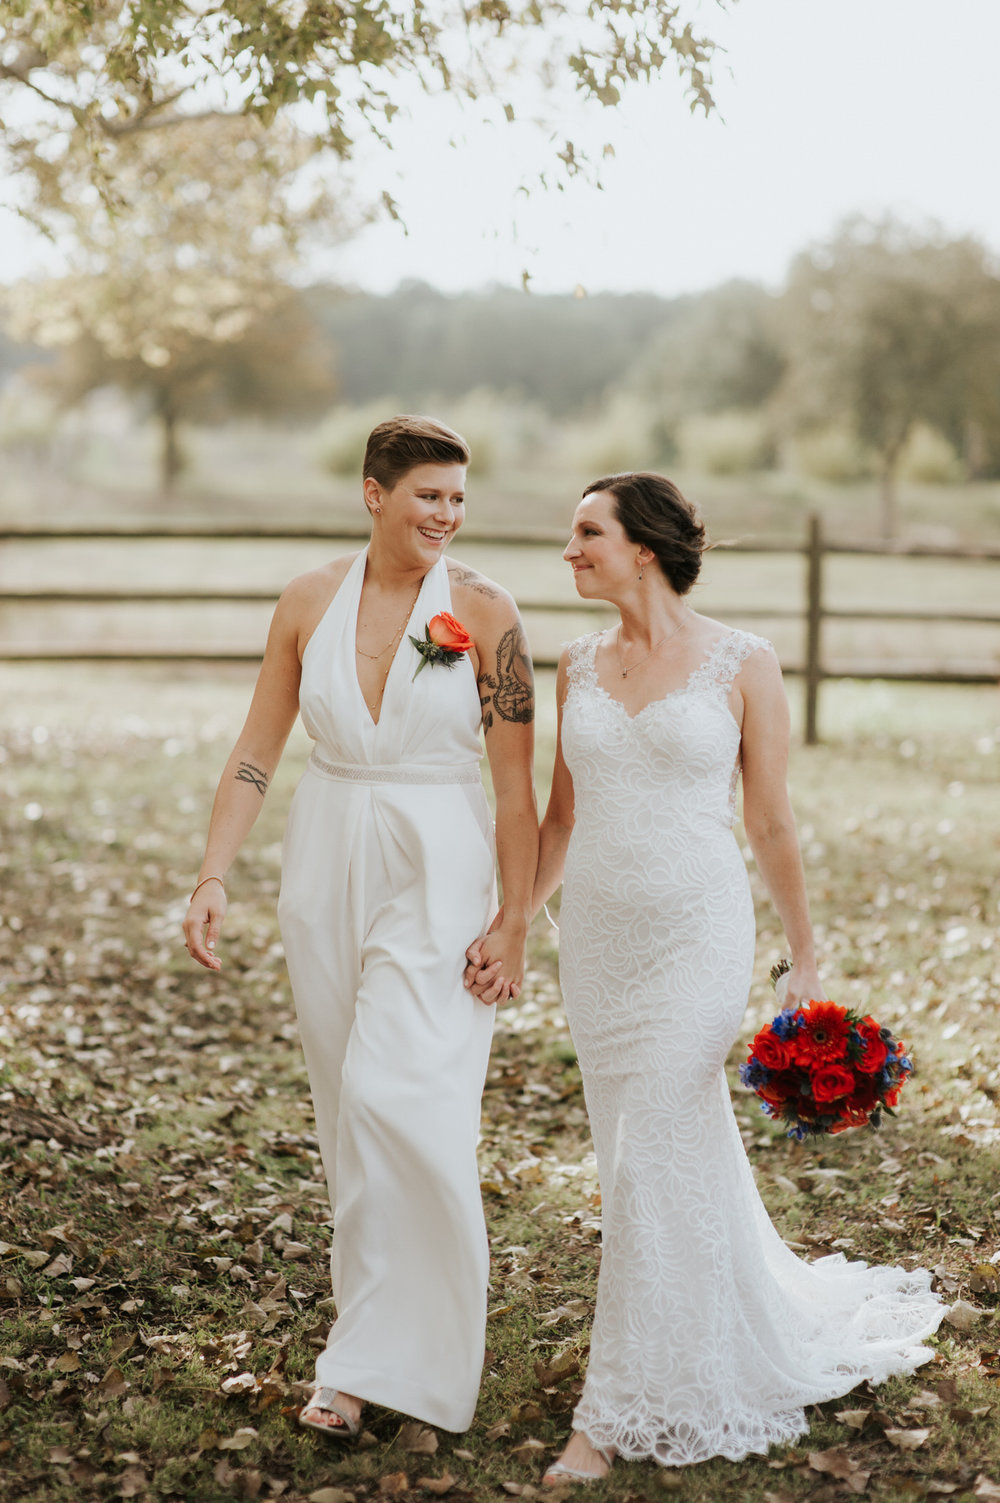 Real wedding style at Austin weddings